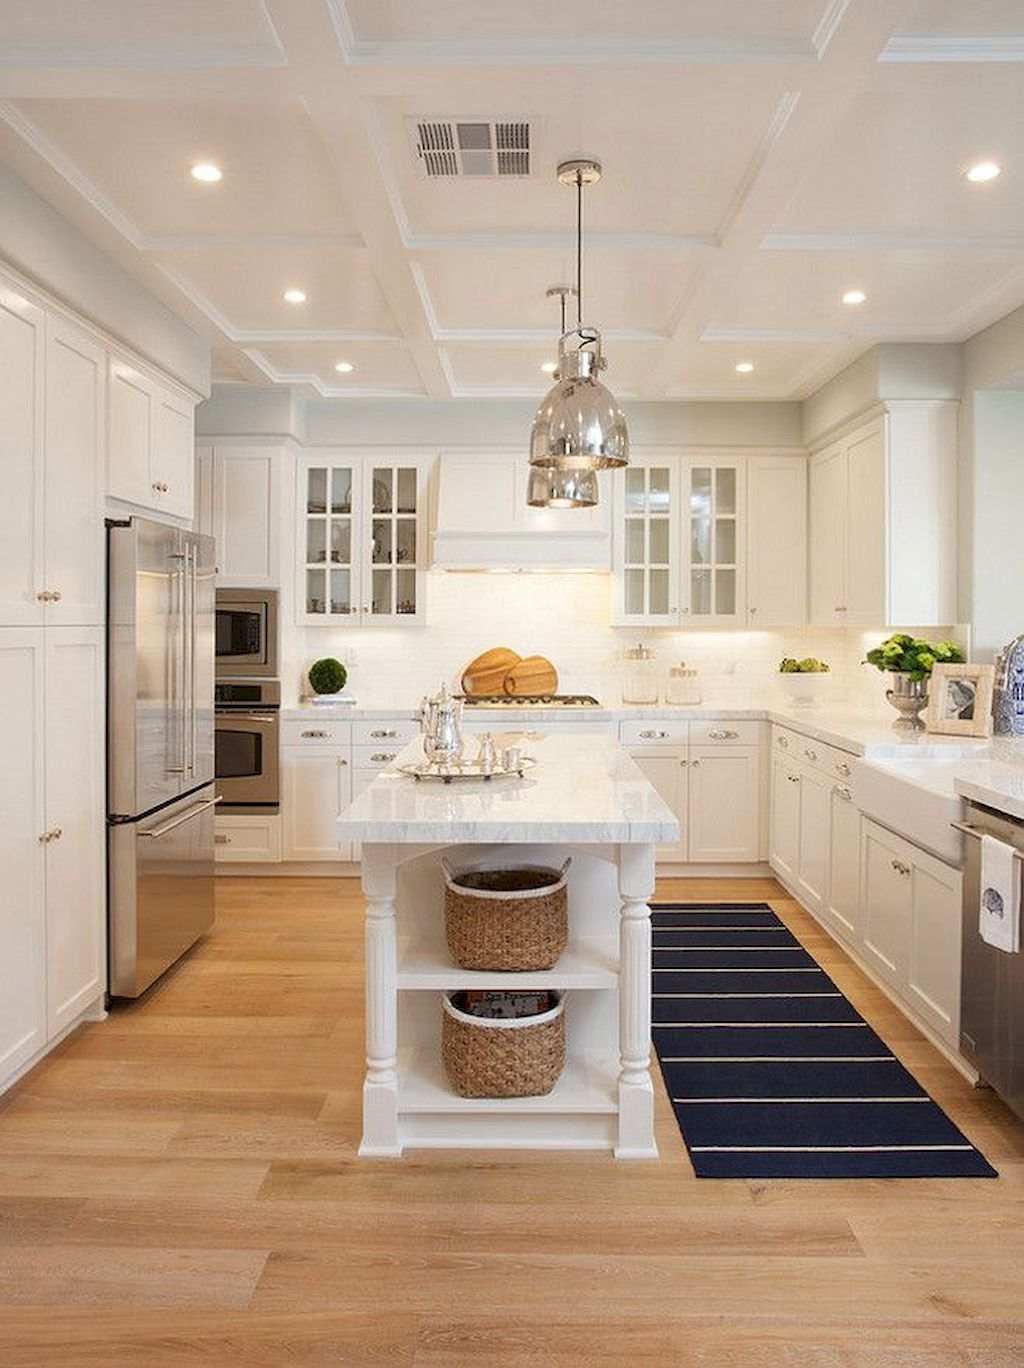 32 beautiful white kitchen cabinet design ideas with images narrow kitchen island interior on kitchen remodel ideas id=14374